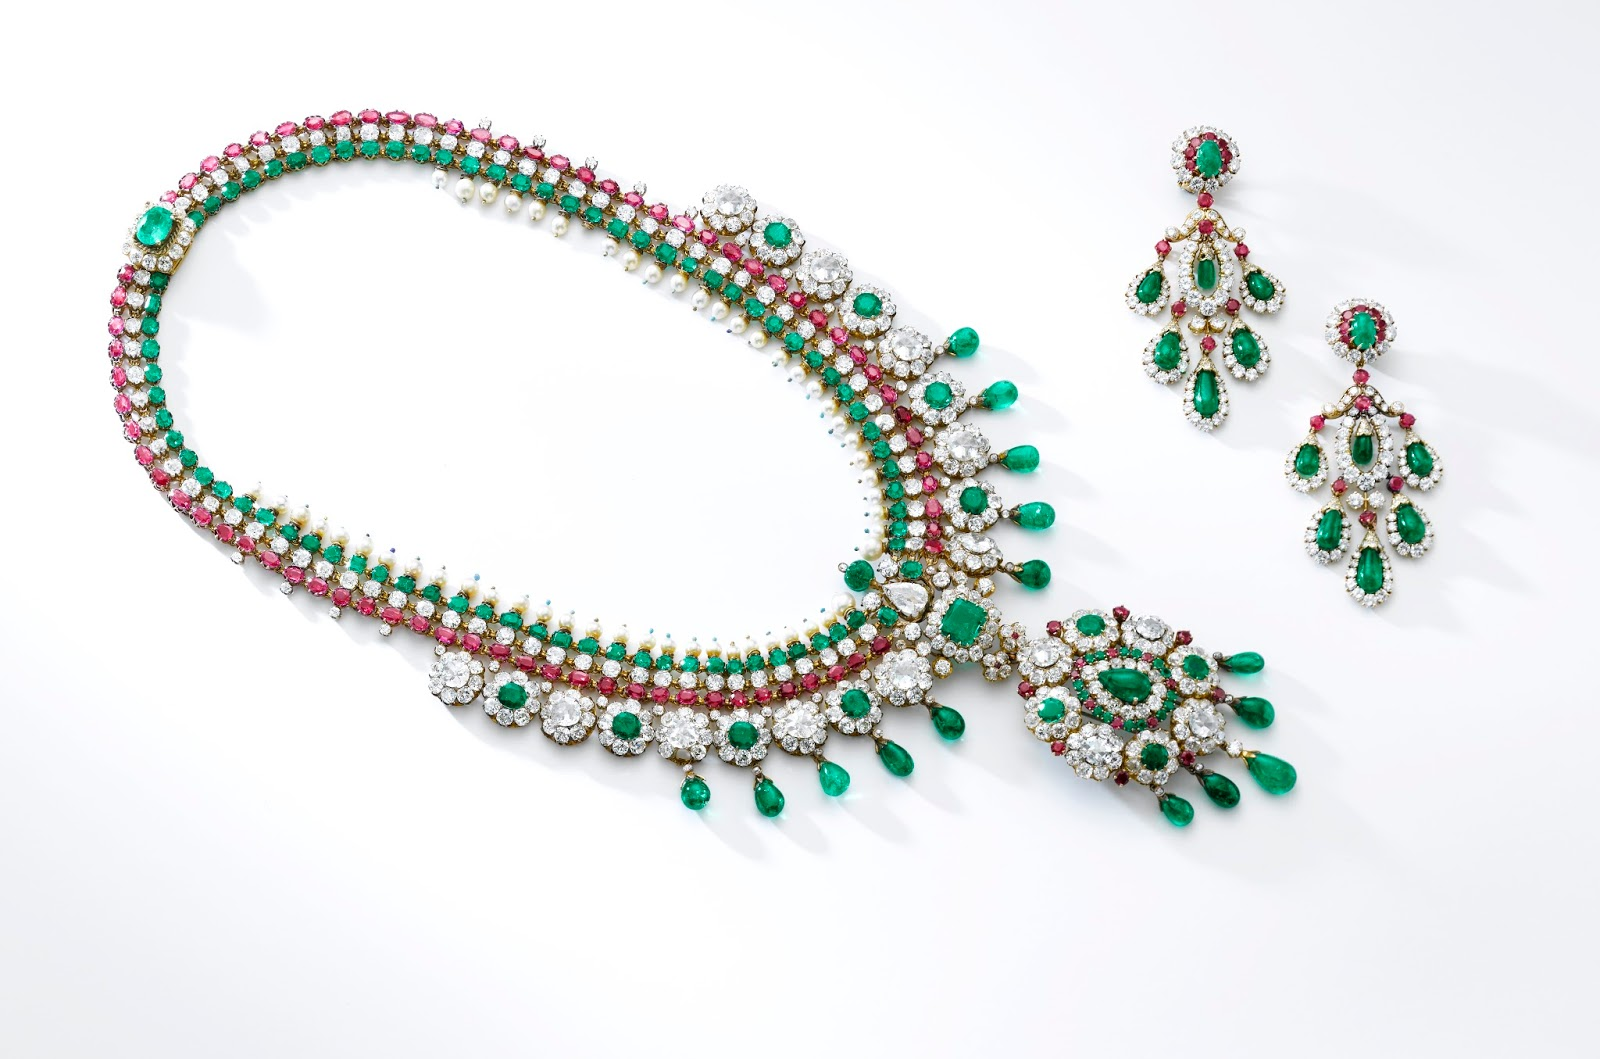 Lot 493 - Gem set and diamond demi-parure, Van Cleef & Arpels, 1960's